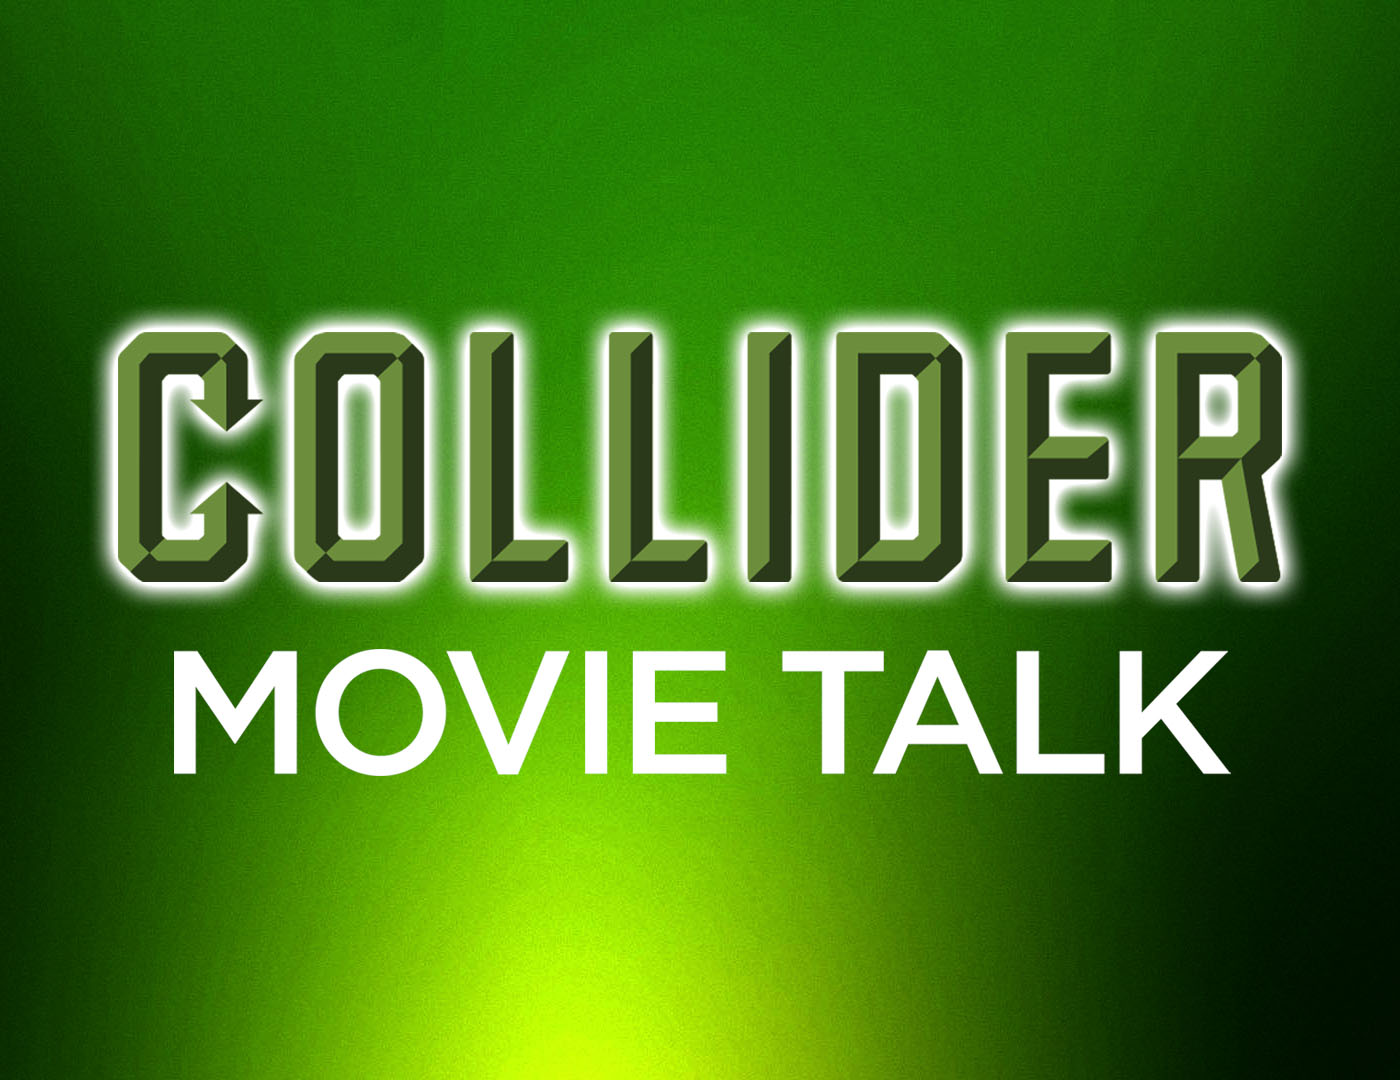 Collider Movie Talk - Next X-Men Movie Set In The 90s, Wonder Woman Wraps Production